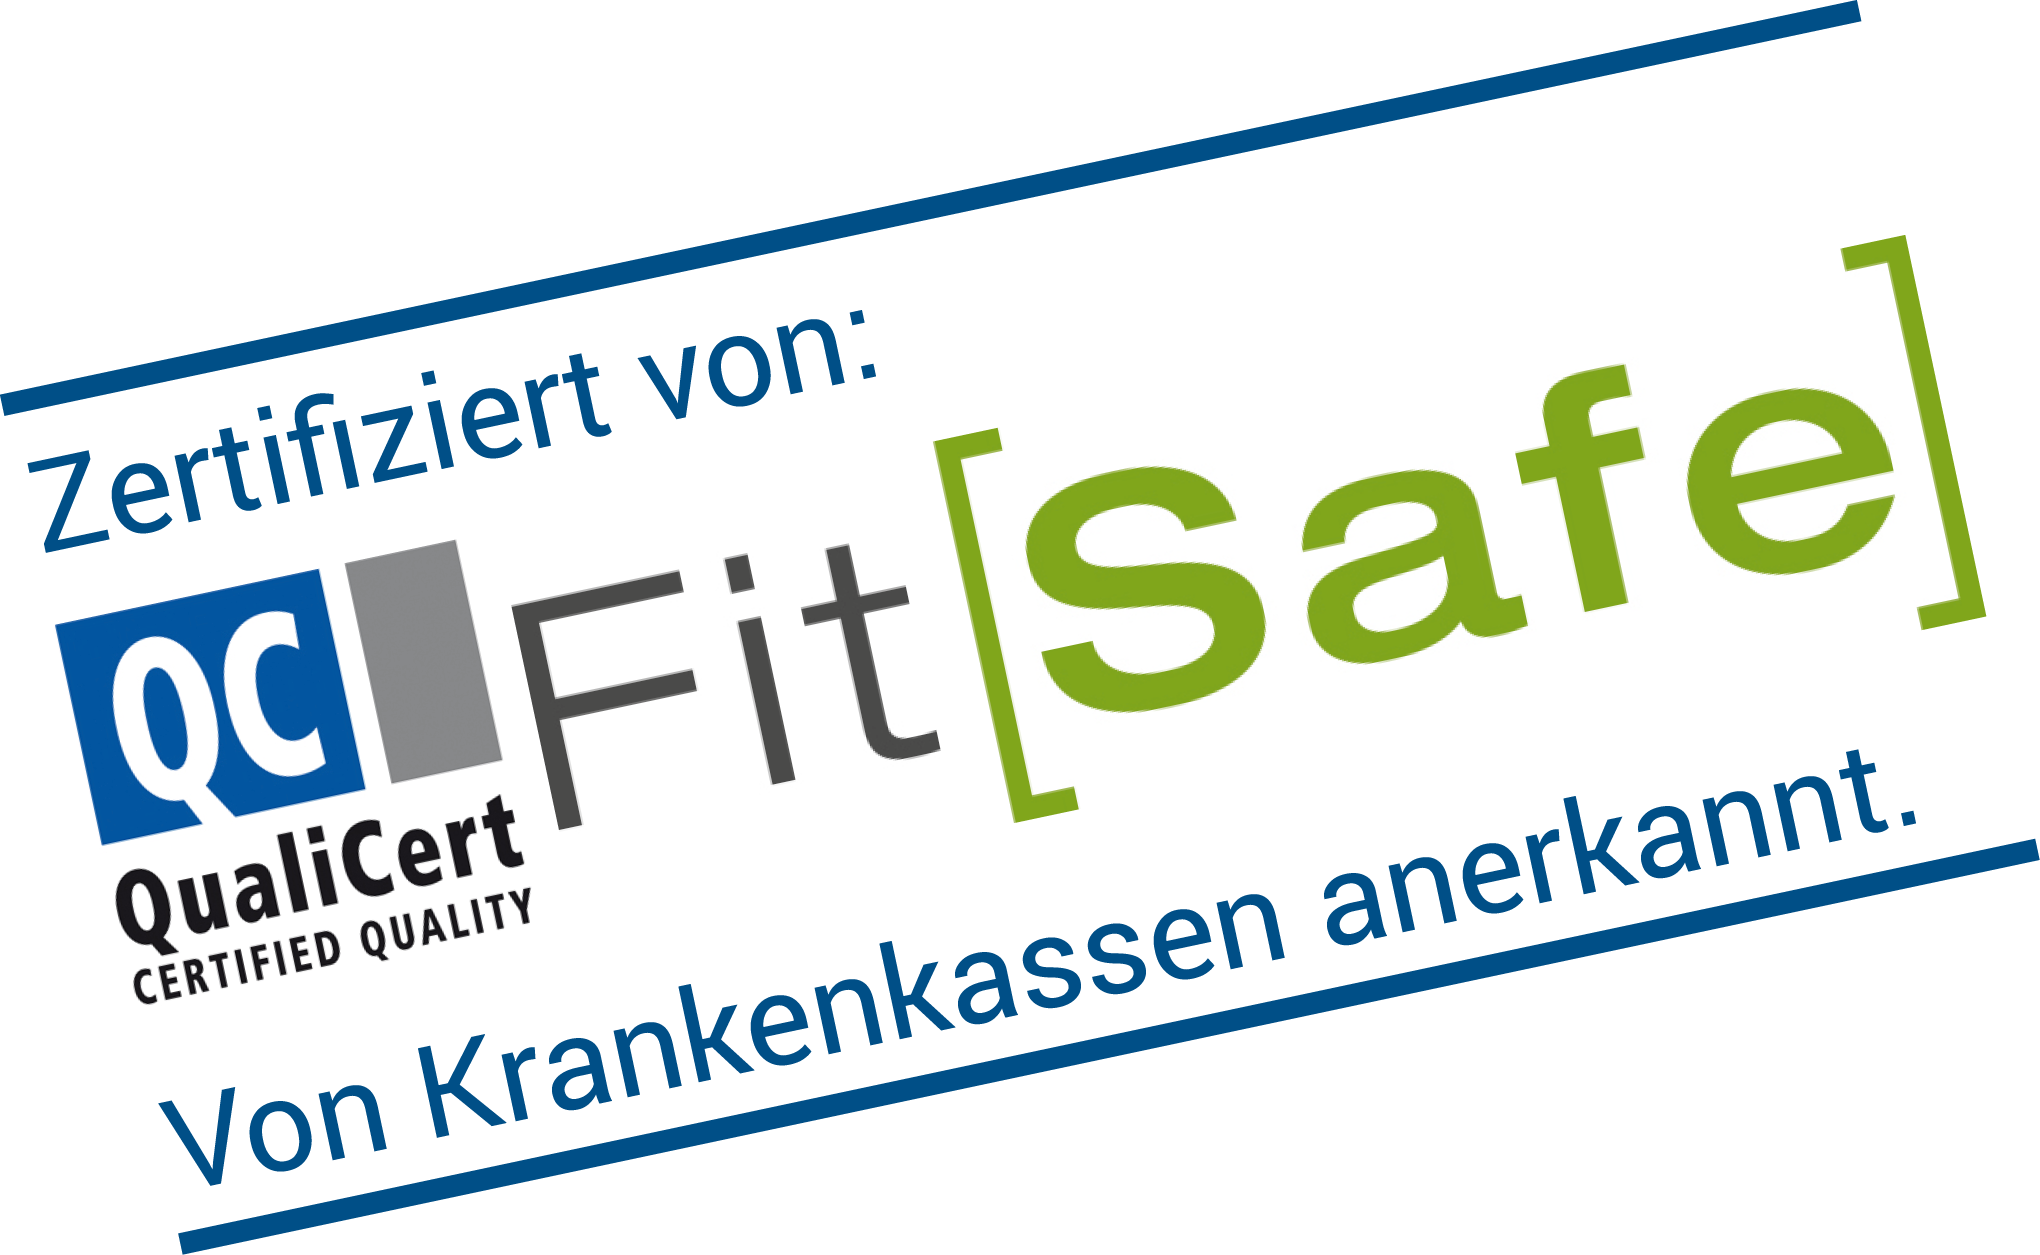 rhytraining physio & fitness stein am rhein qualicert fitsafe